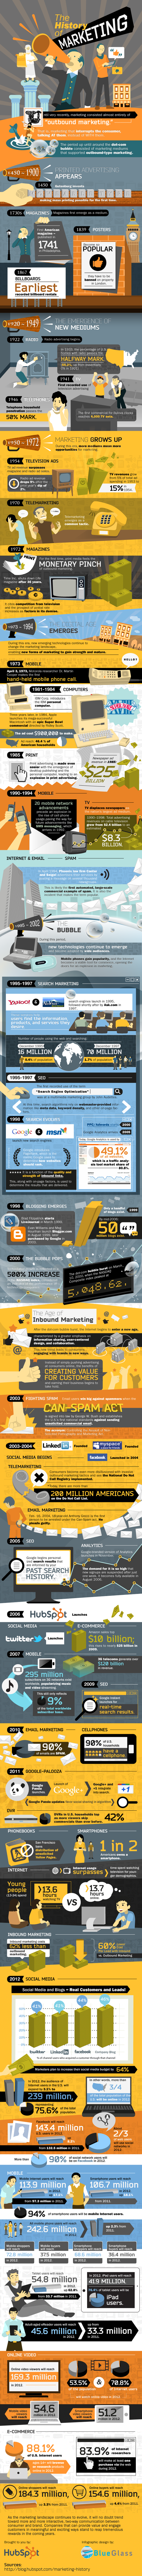 The History Of #Marketing - #infographic #B2B                                               ----------------------------------------------------------  Let's Engage more on Twitter: @Navida NB Kamali  Let's Connect on LinkedIn: au.linkedin.com/in/navidsaadati